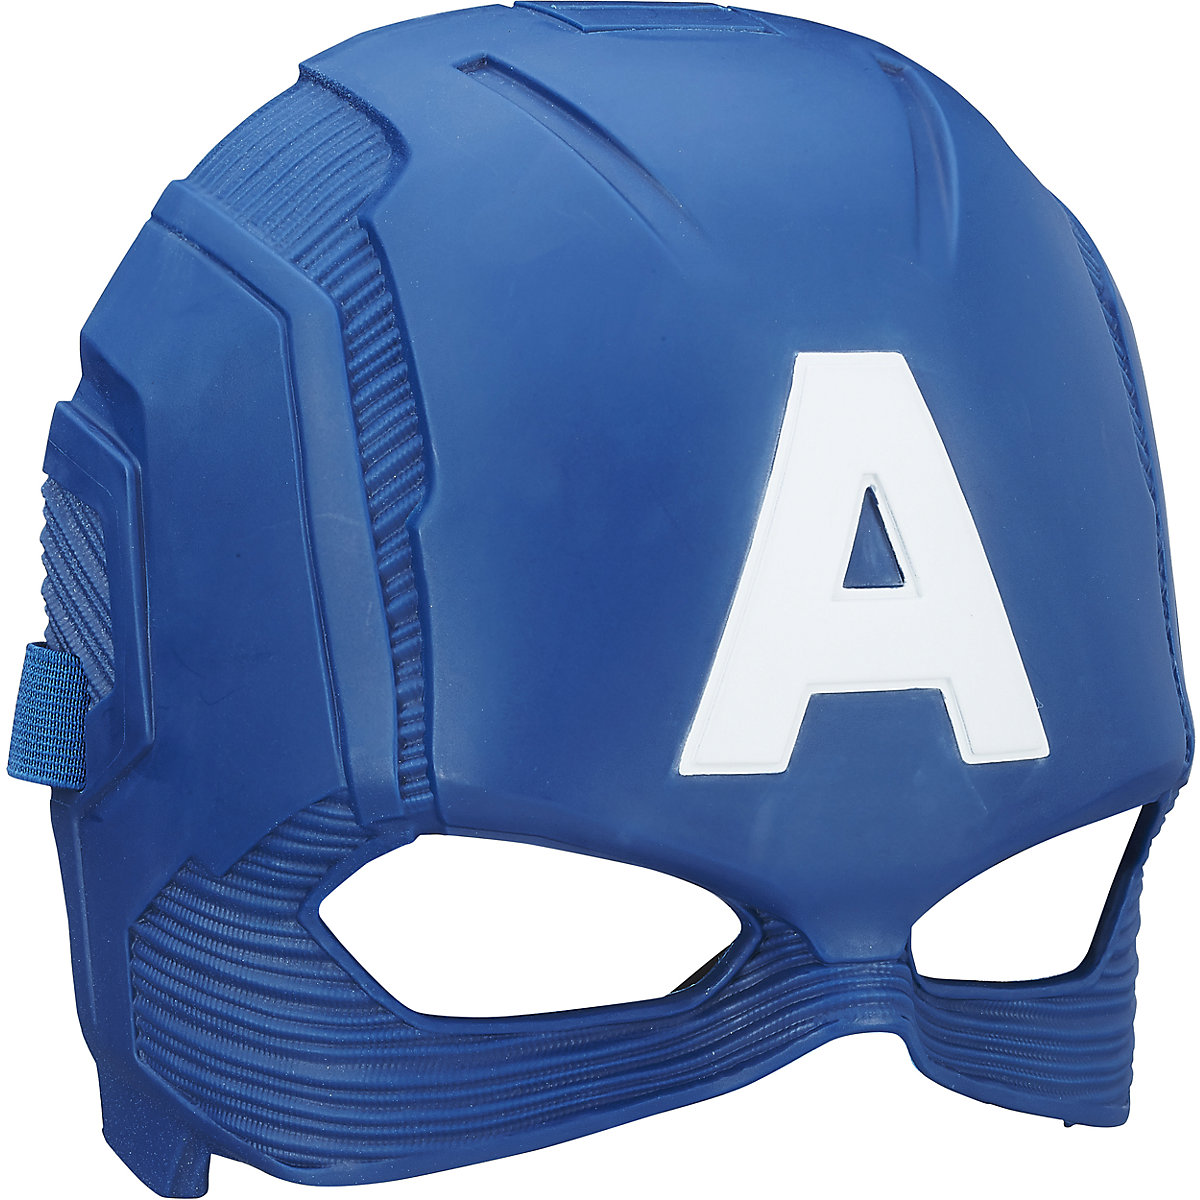 Hasbro Mask 5064750 playsets interactive masks aprilpromo Avengers Marvel Captain America hot avengers civil war captain america rubber 1 1 cosplay helmet wearable captain mask action figure toys christmas